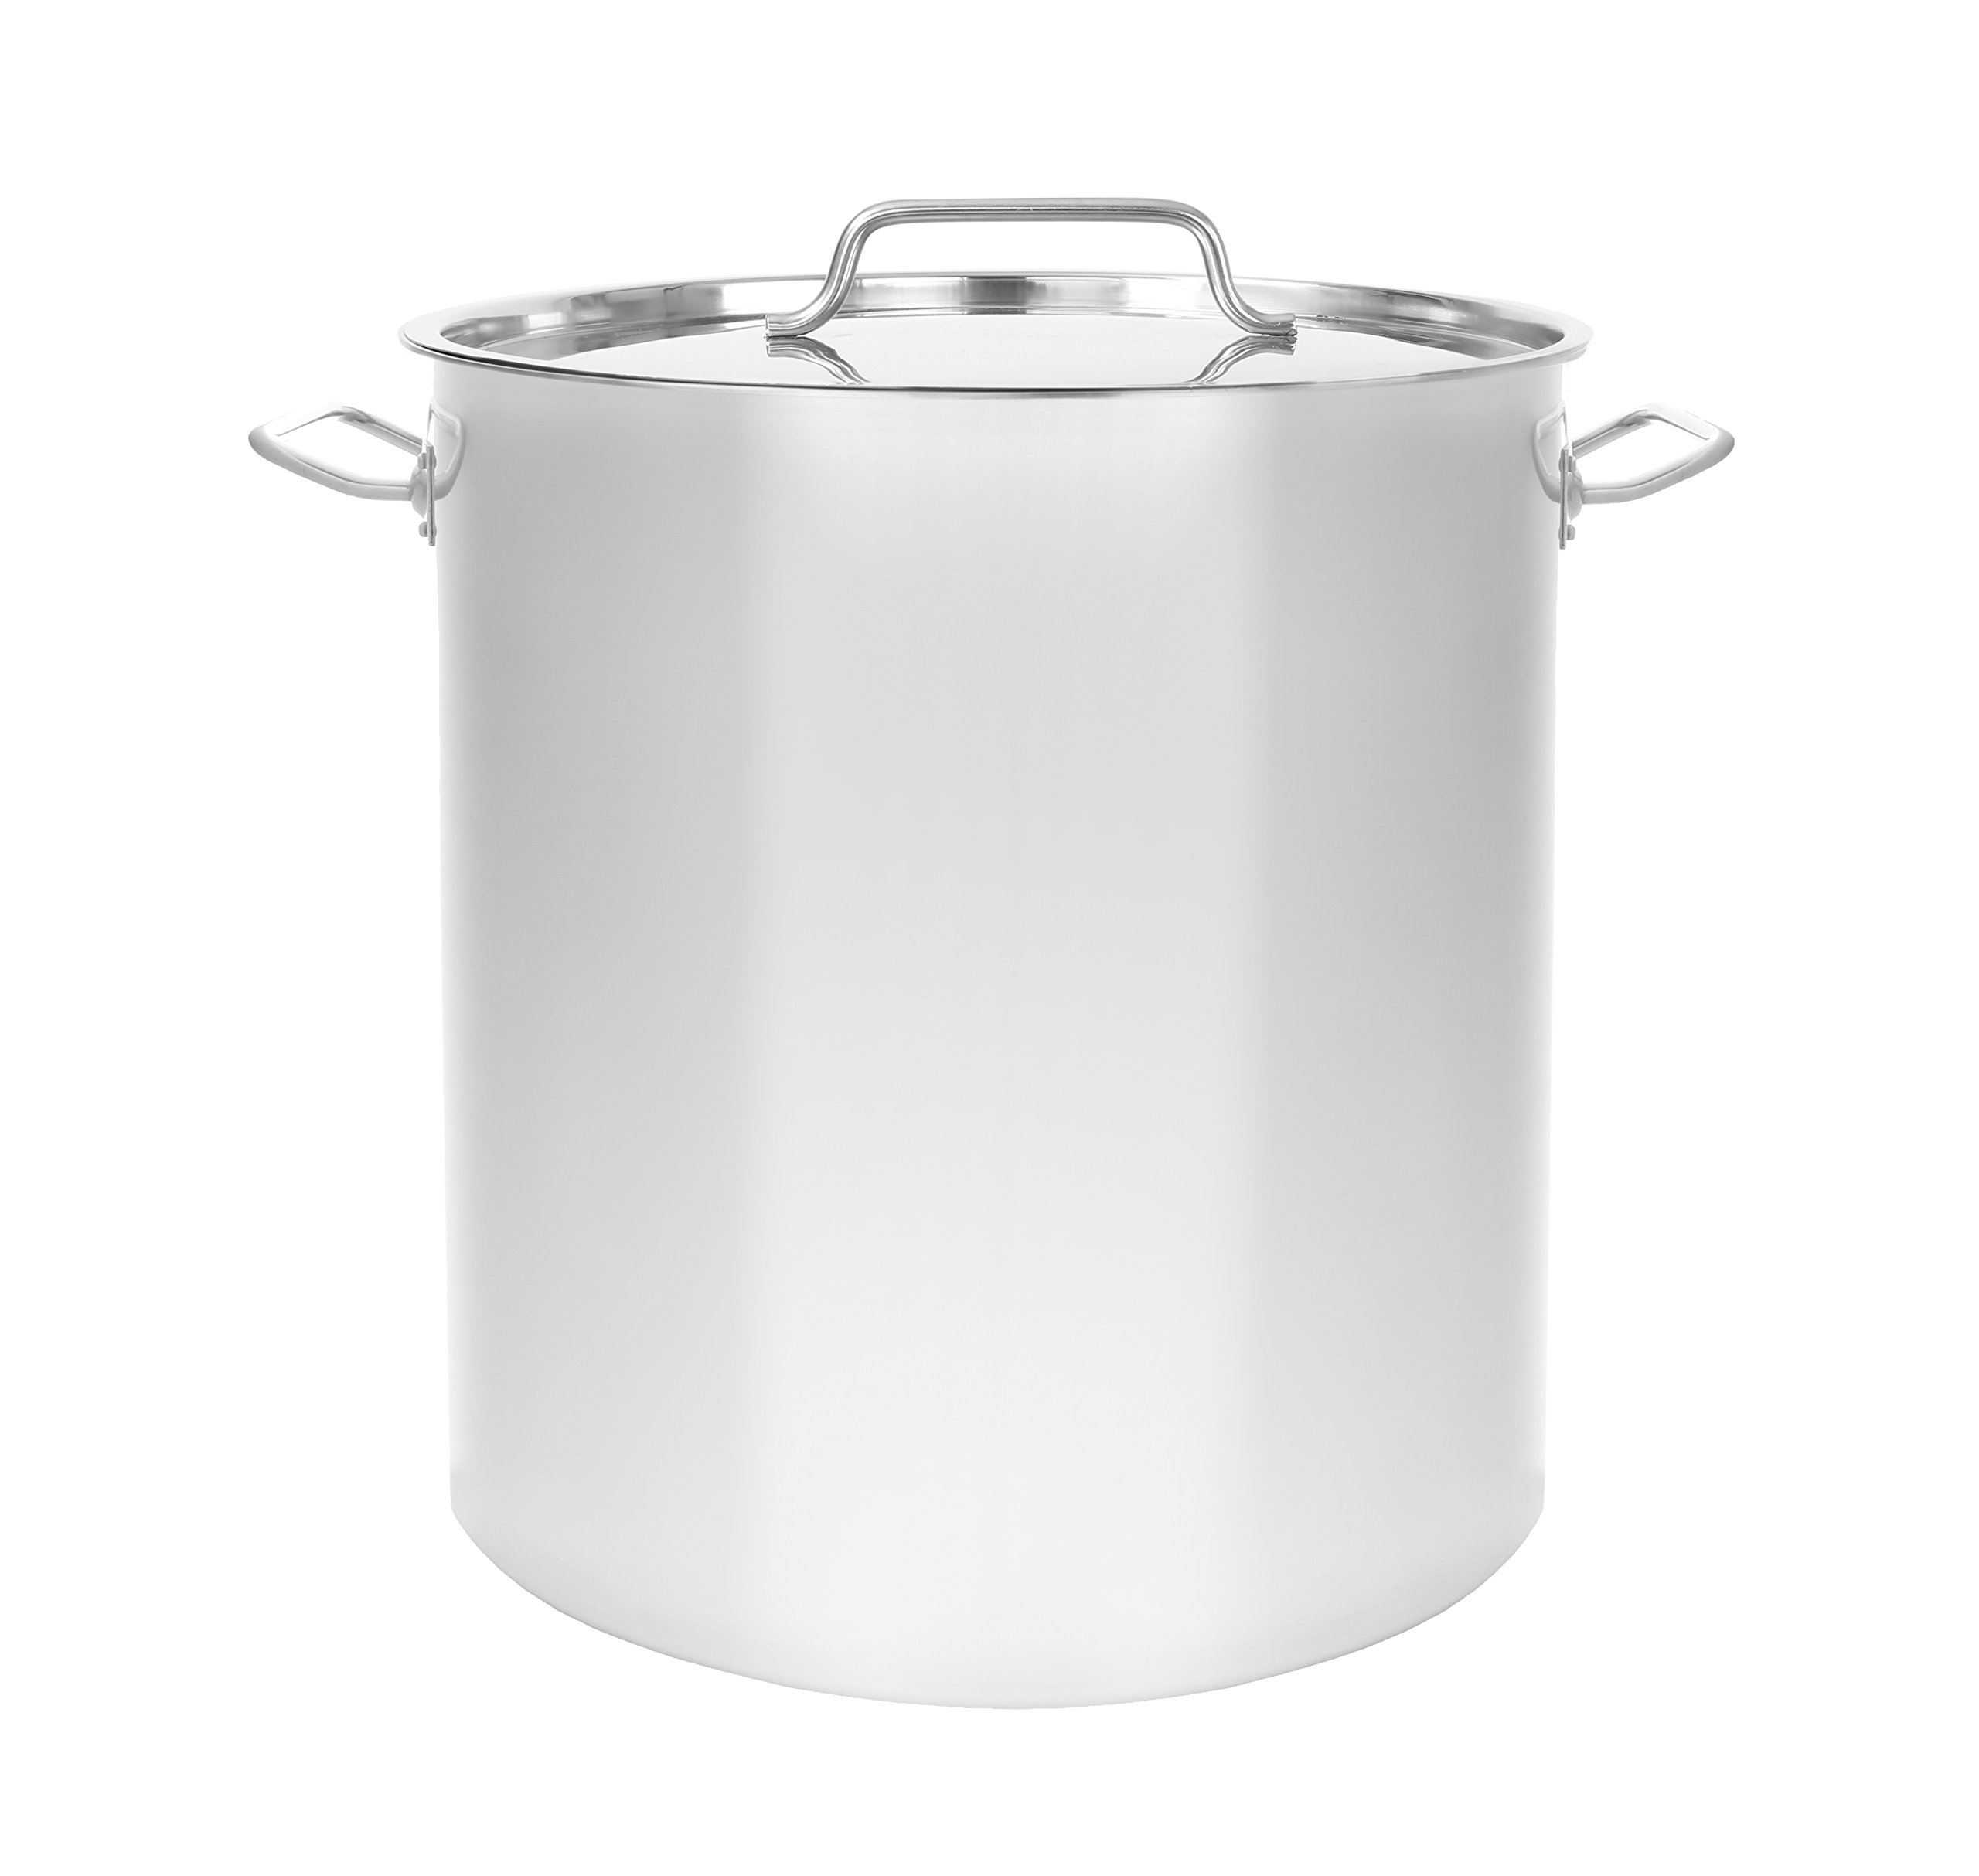 CONCORD Triply Bottom Stainless Steel Stock Pot Home Brew Kettle (60 QT)